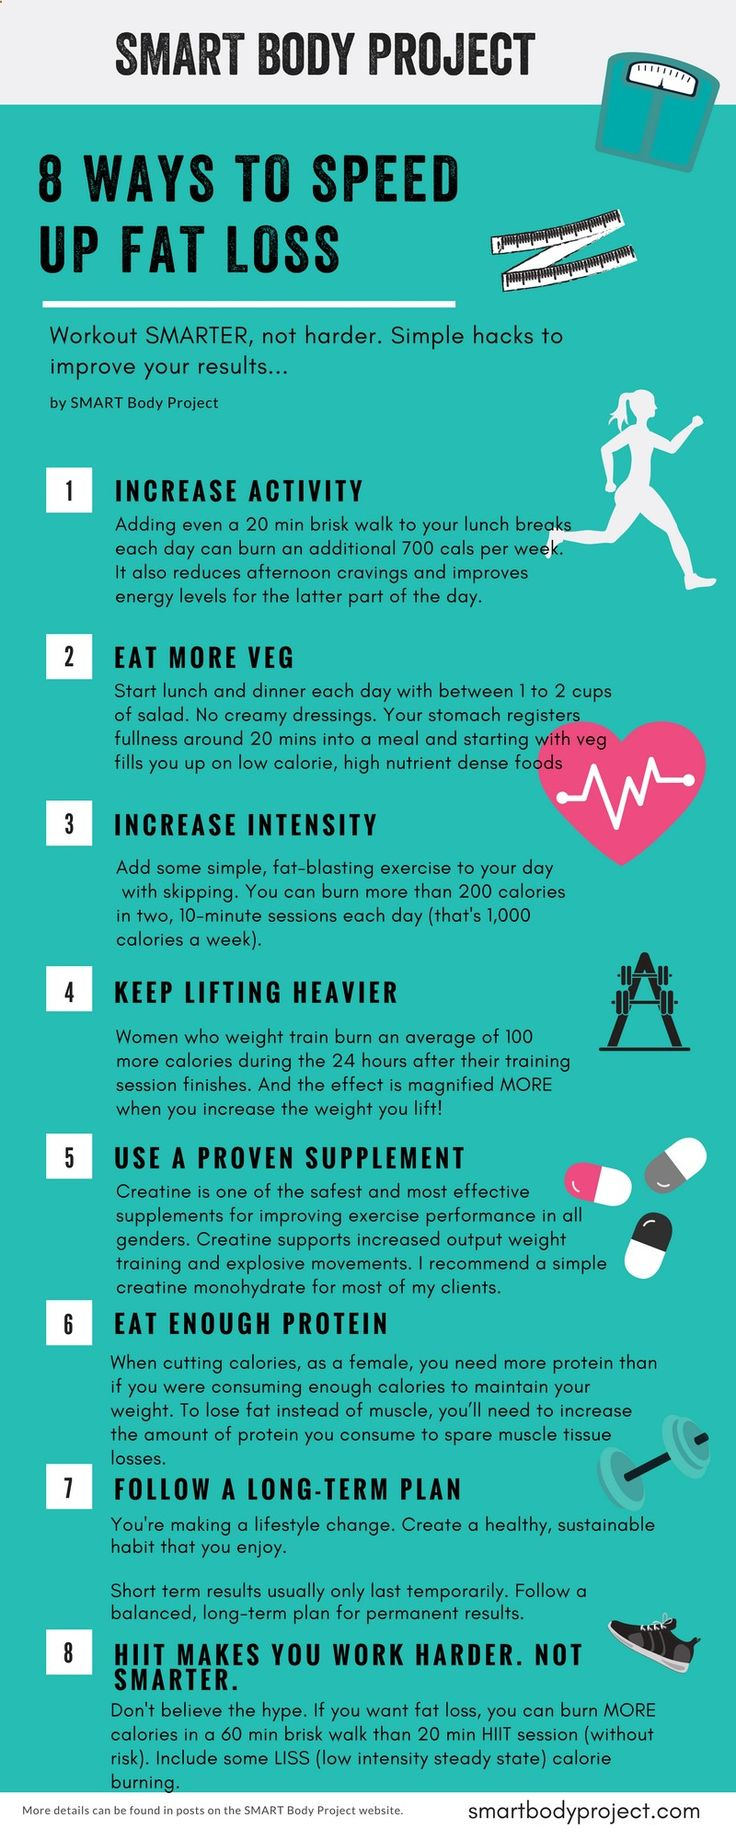 Plus the 5 supplements to boost results you need to know about!